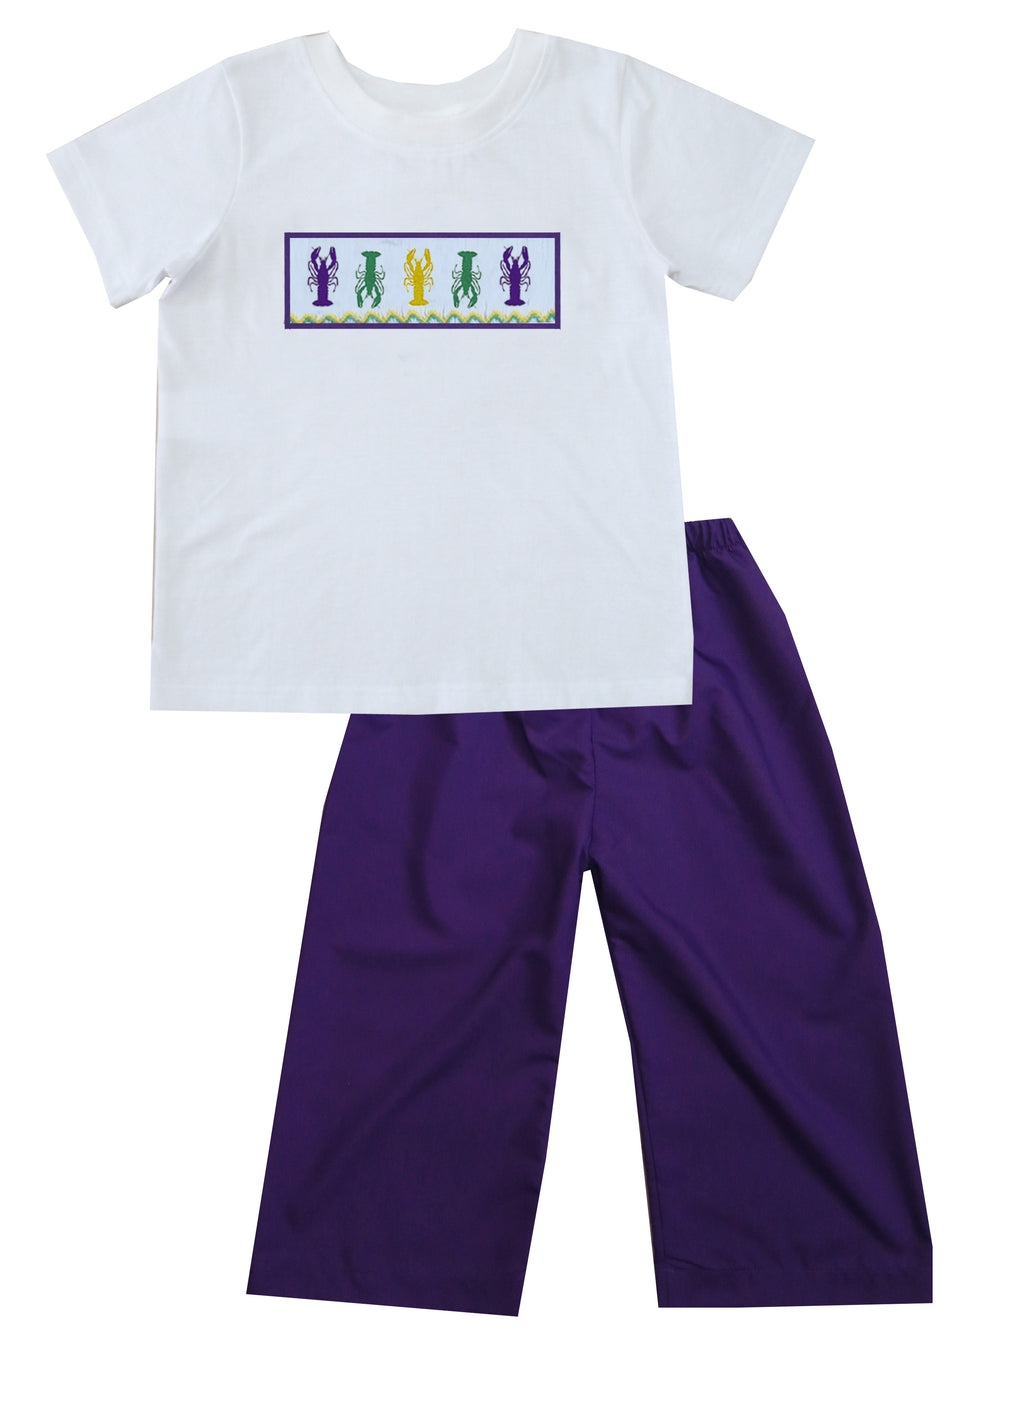 Mardi Gras Crawfish Boys Pants Set